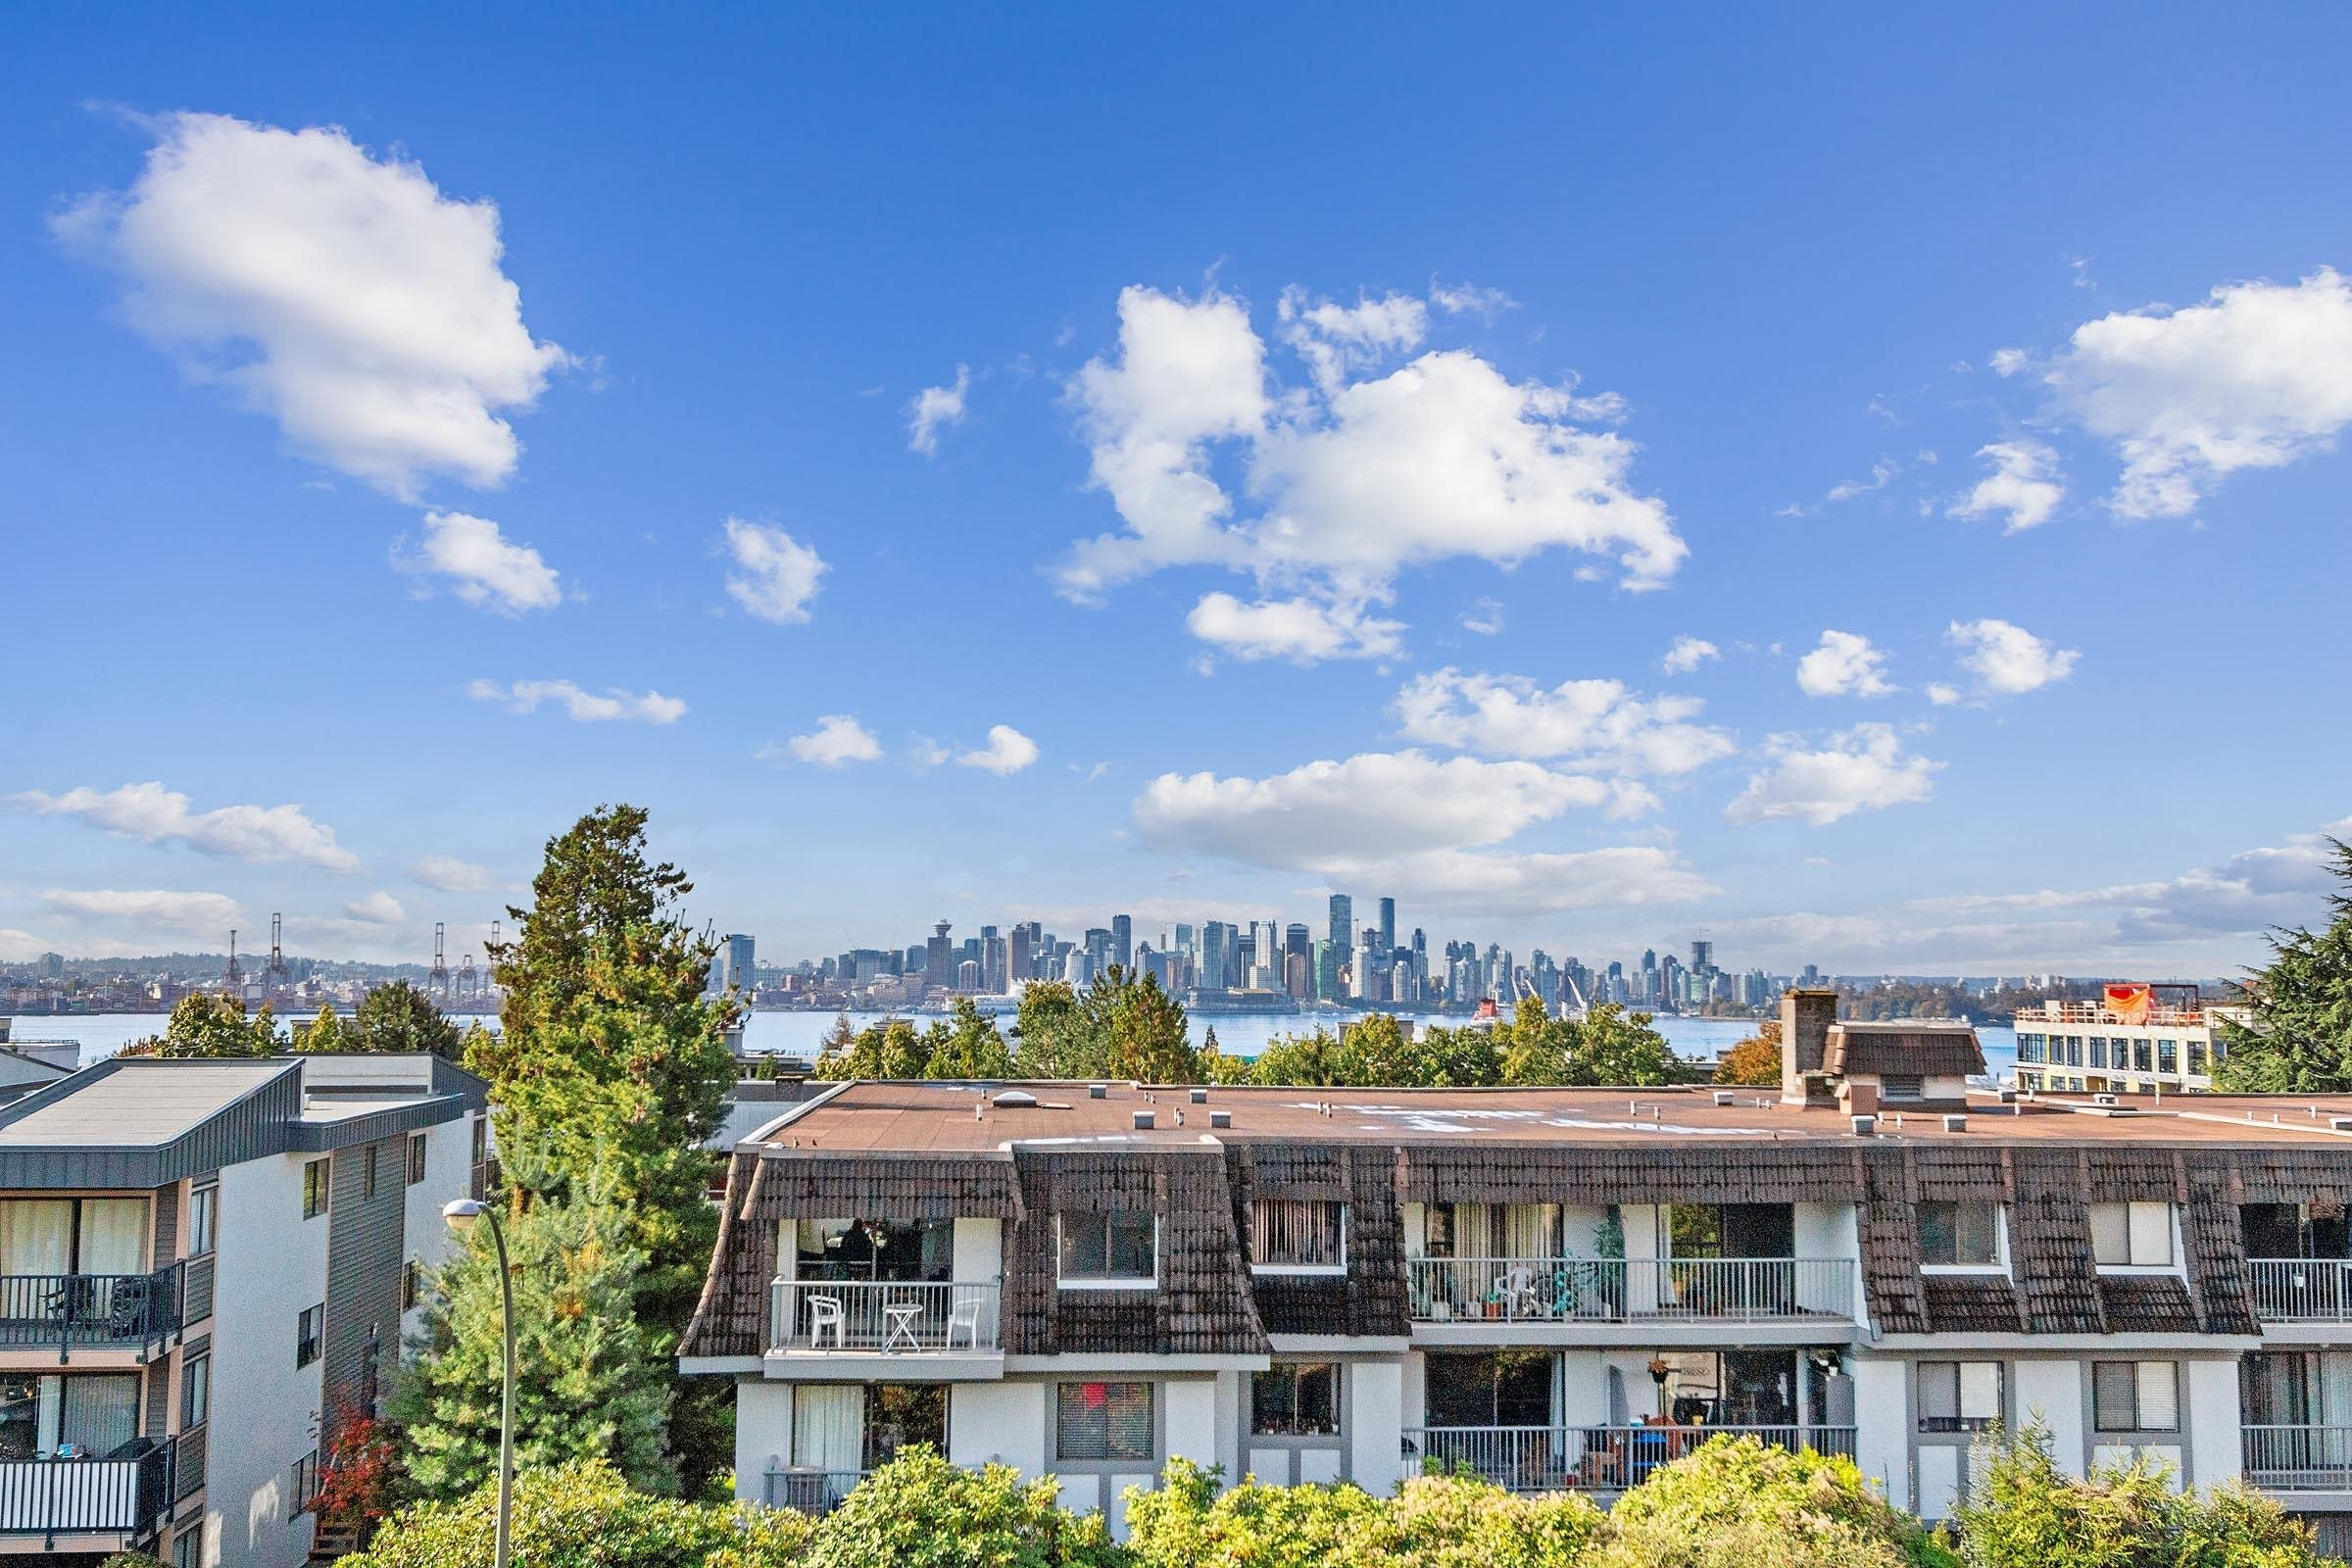 301 264 W 2ND STREET - Lower Lonsdale Apartment/Condo for sale, 2 Bedrooms (R2625527) - #19